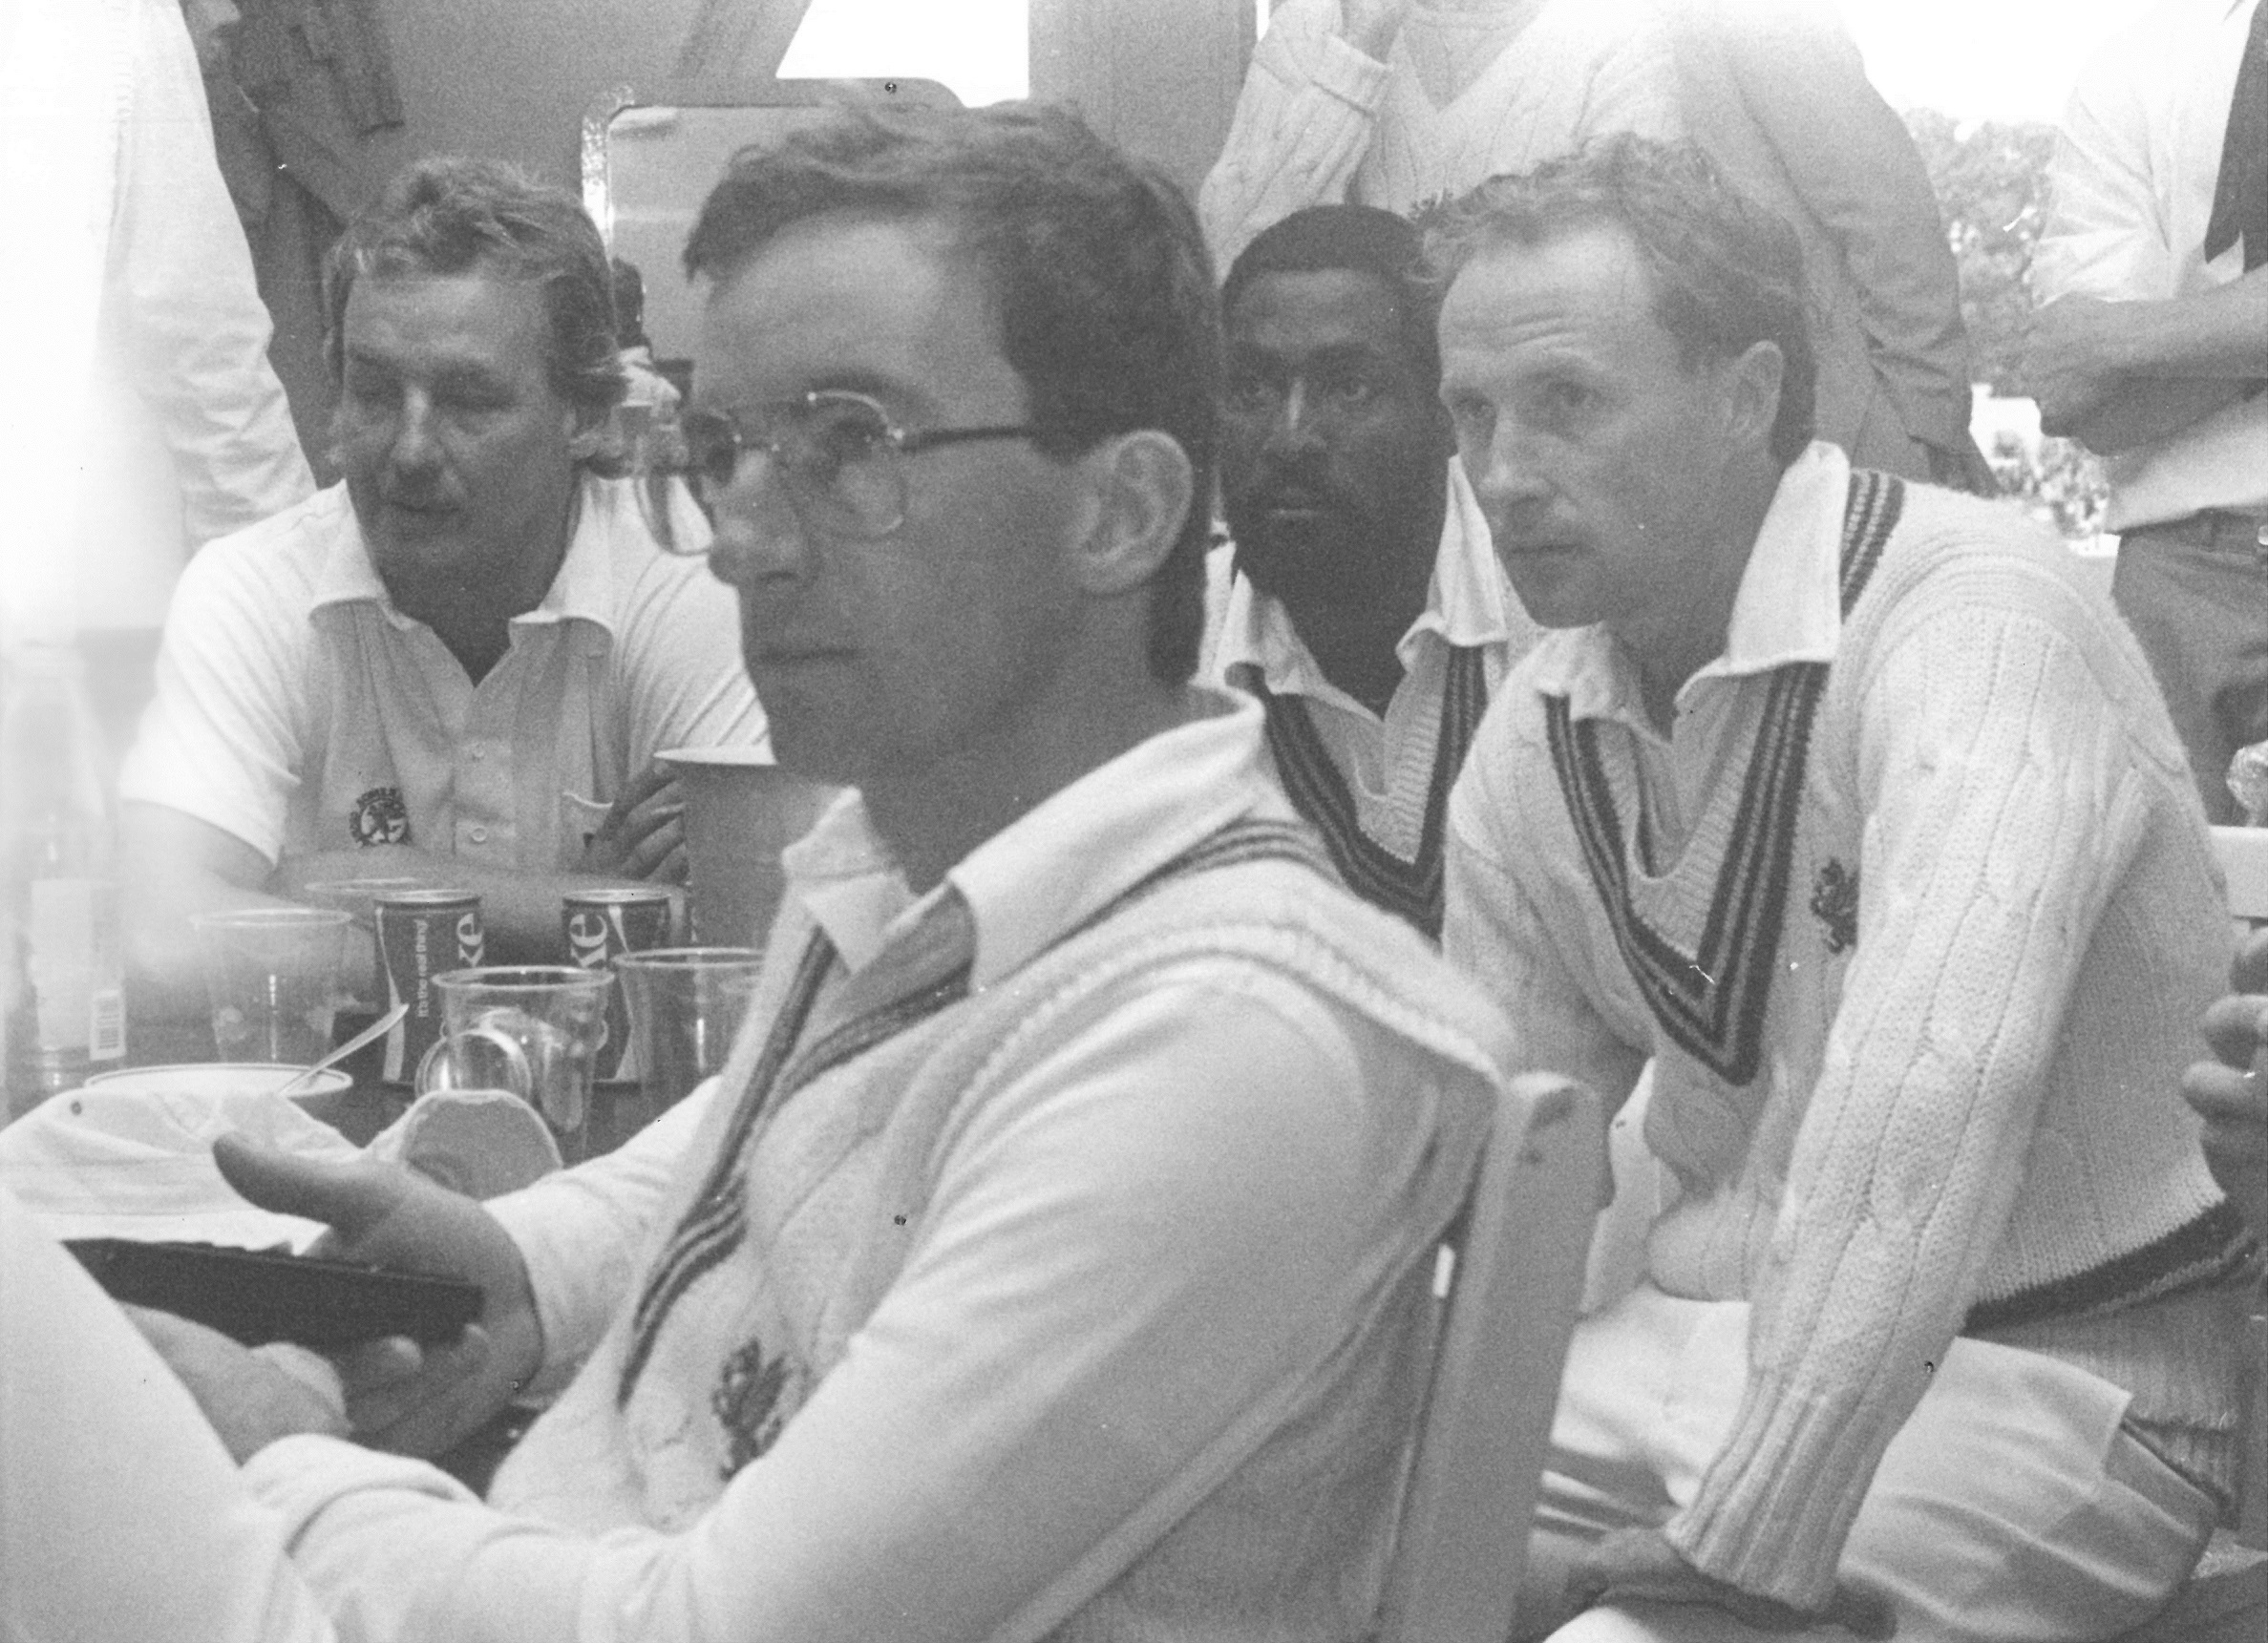 Peter Roebuck (front) and Somerset colleagues at Lord's in 1983